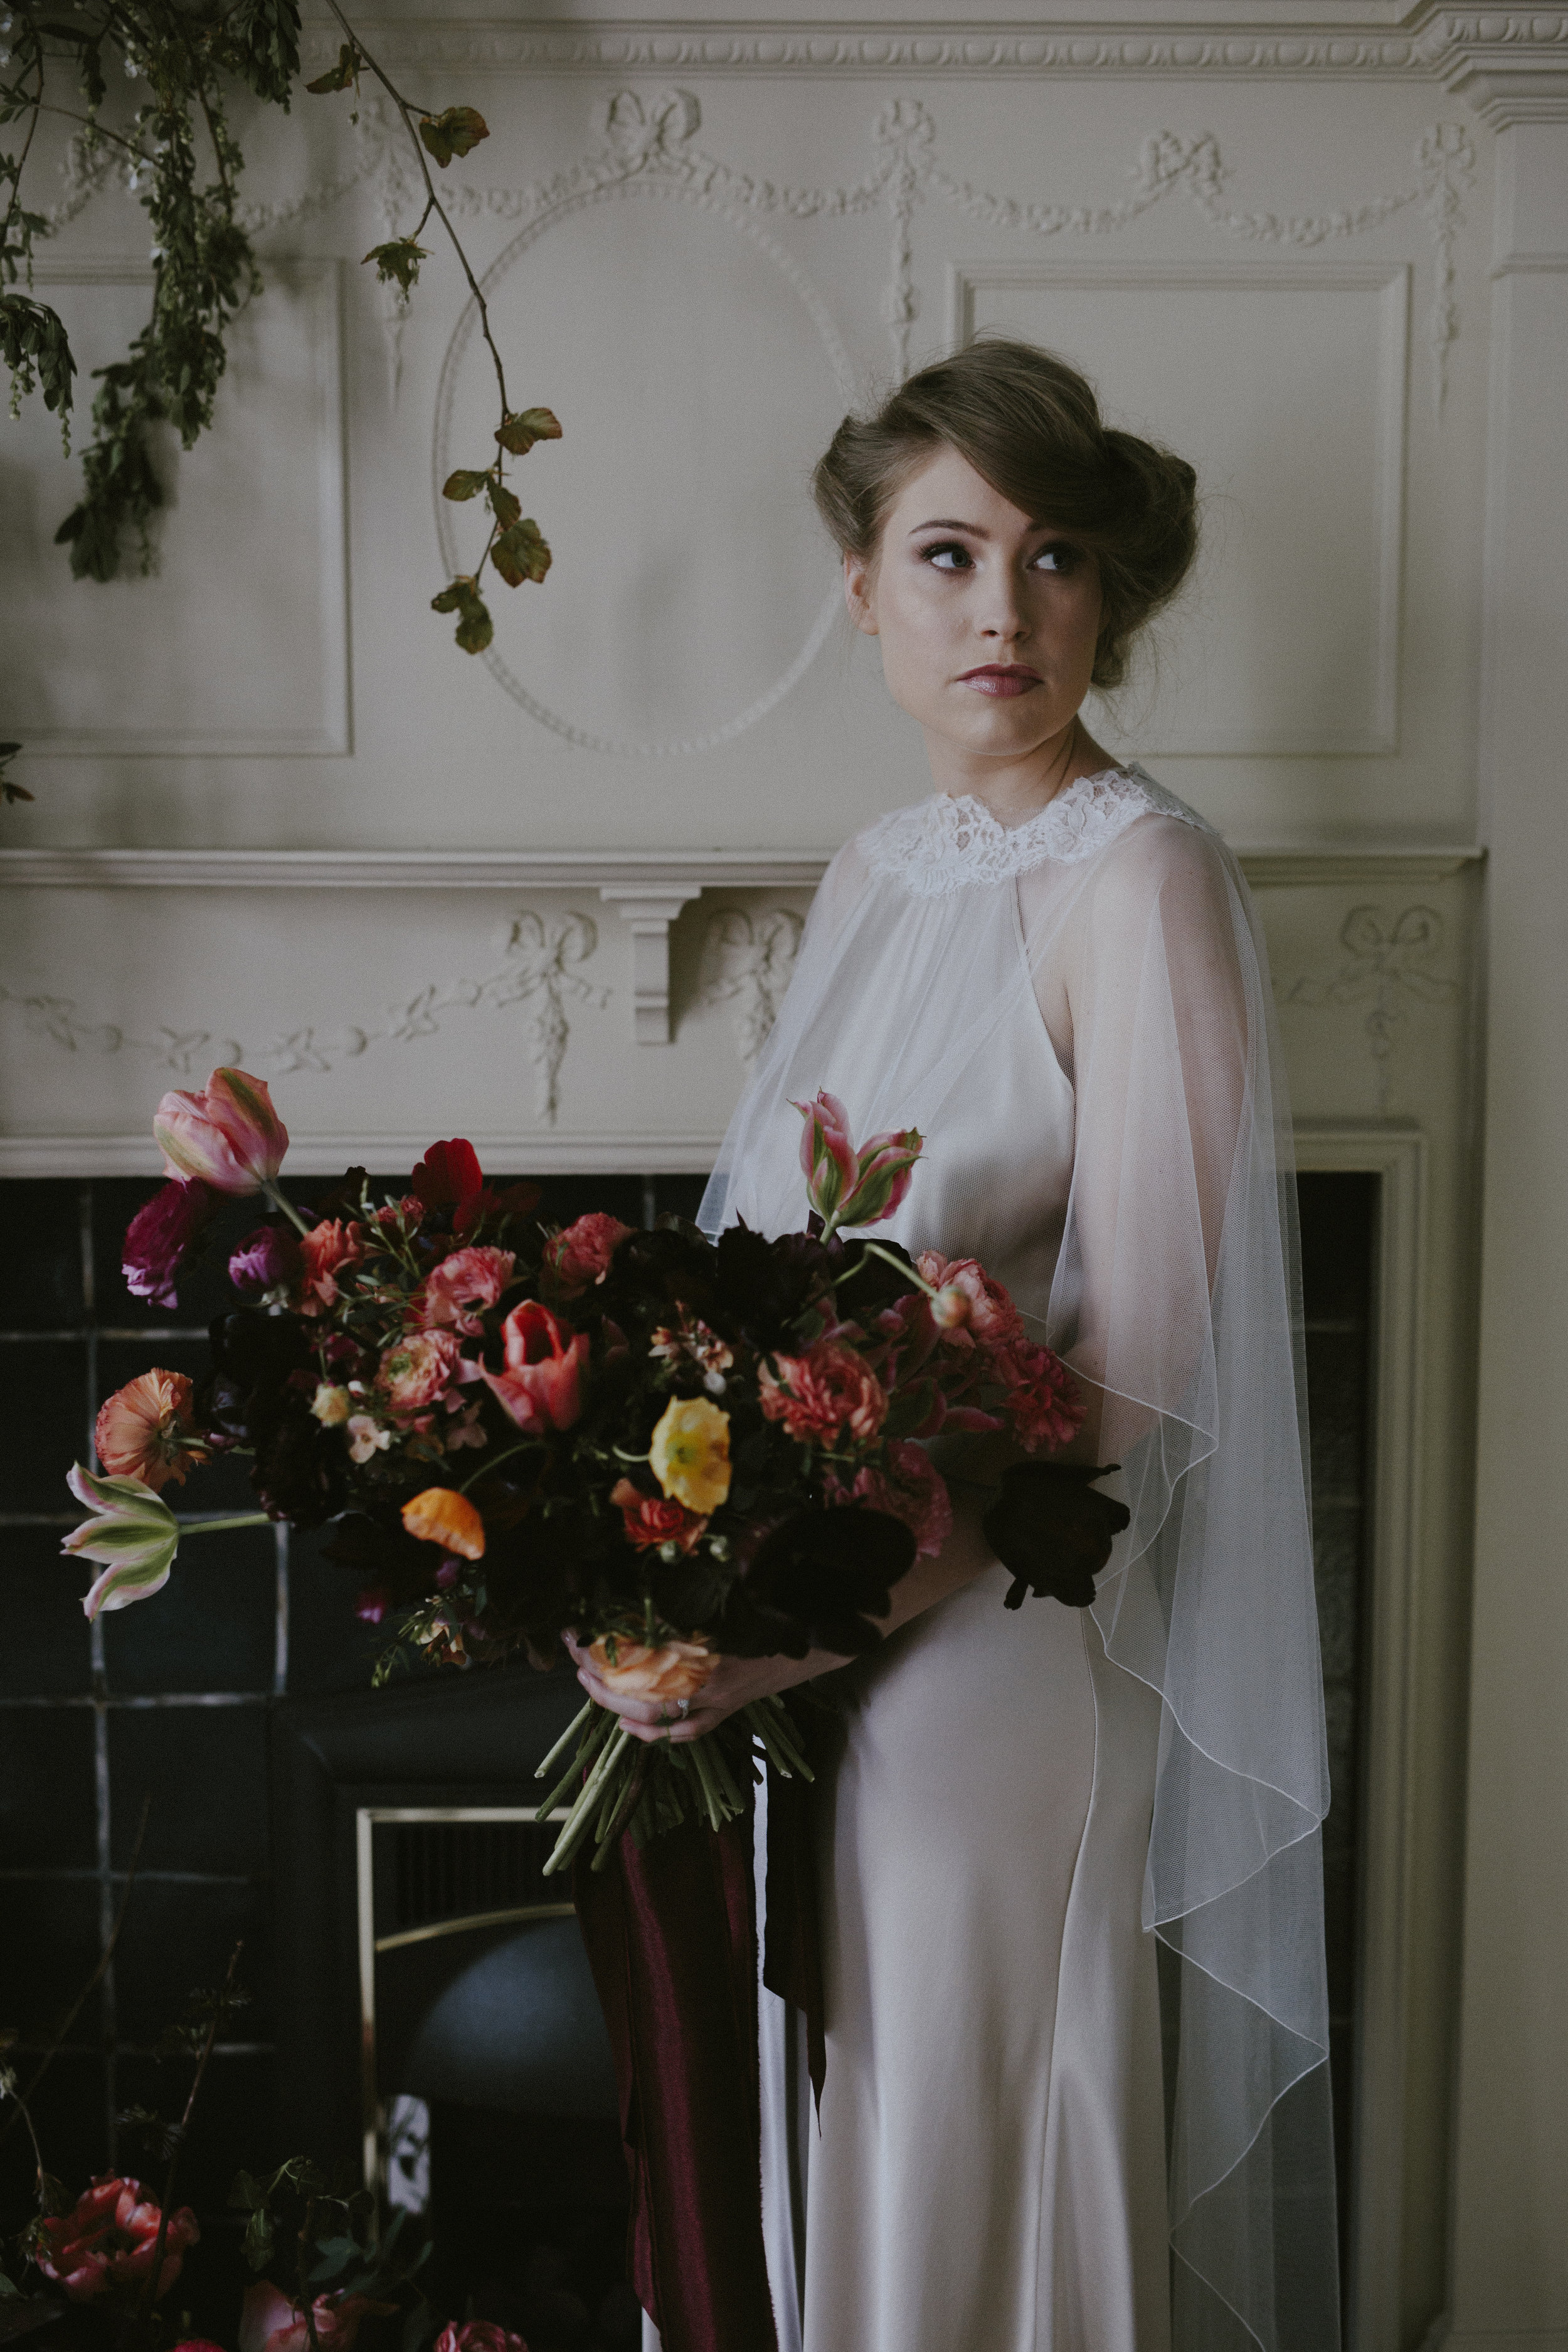 Agnes-and-bee-Kate-Beaumont-wedding-dresses-Ruth-Atkinson-20.jpg